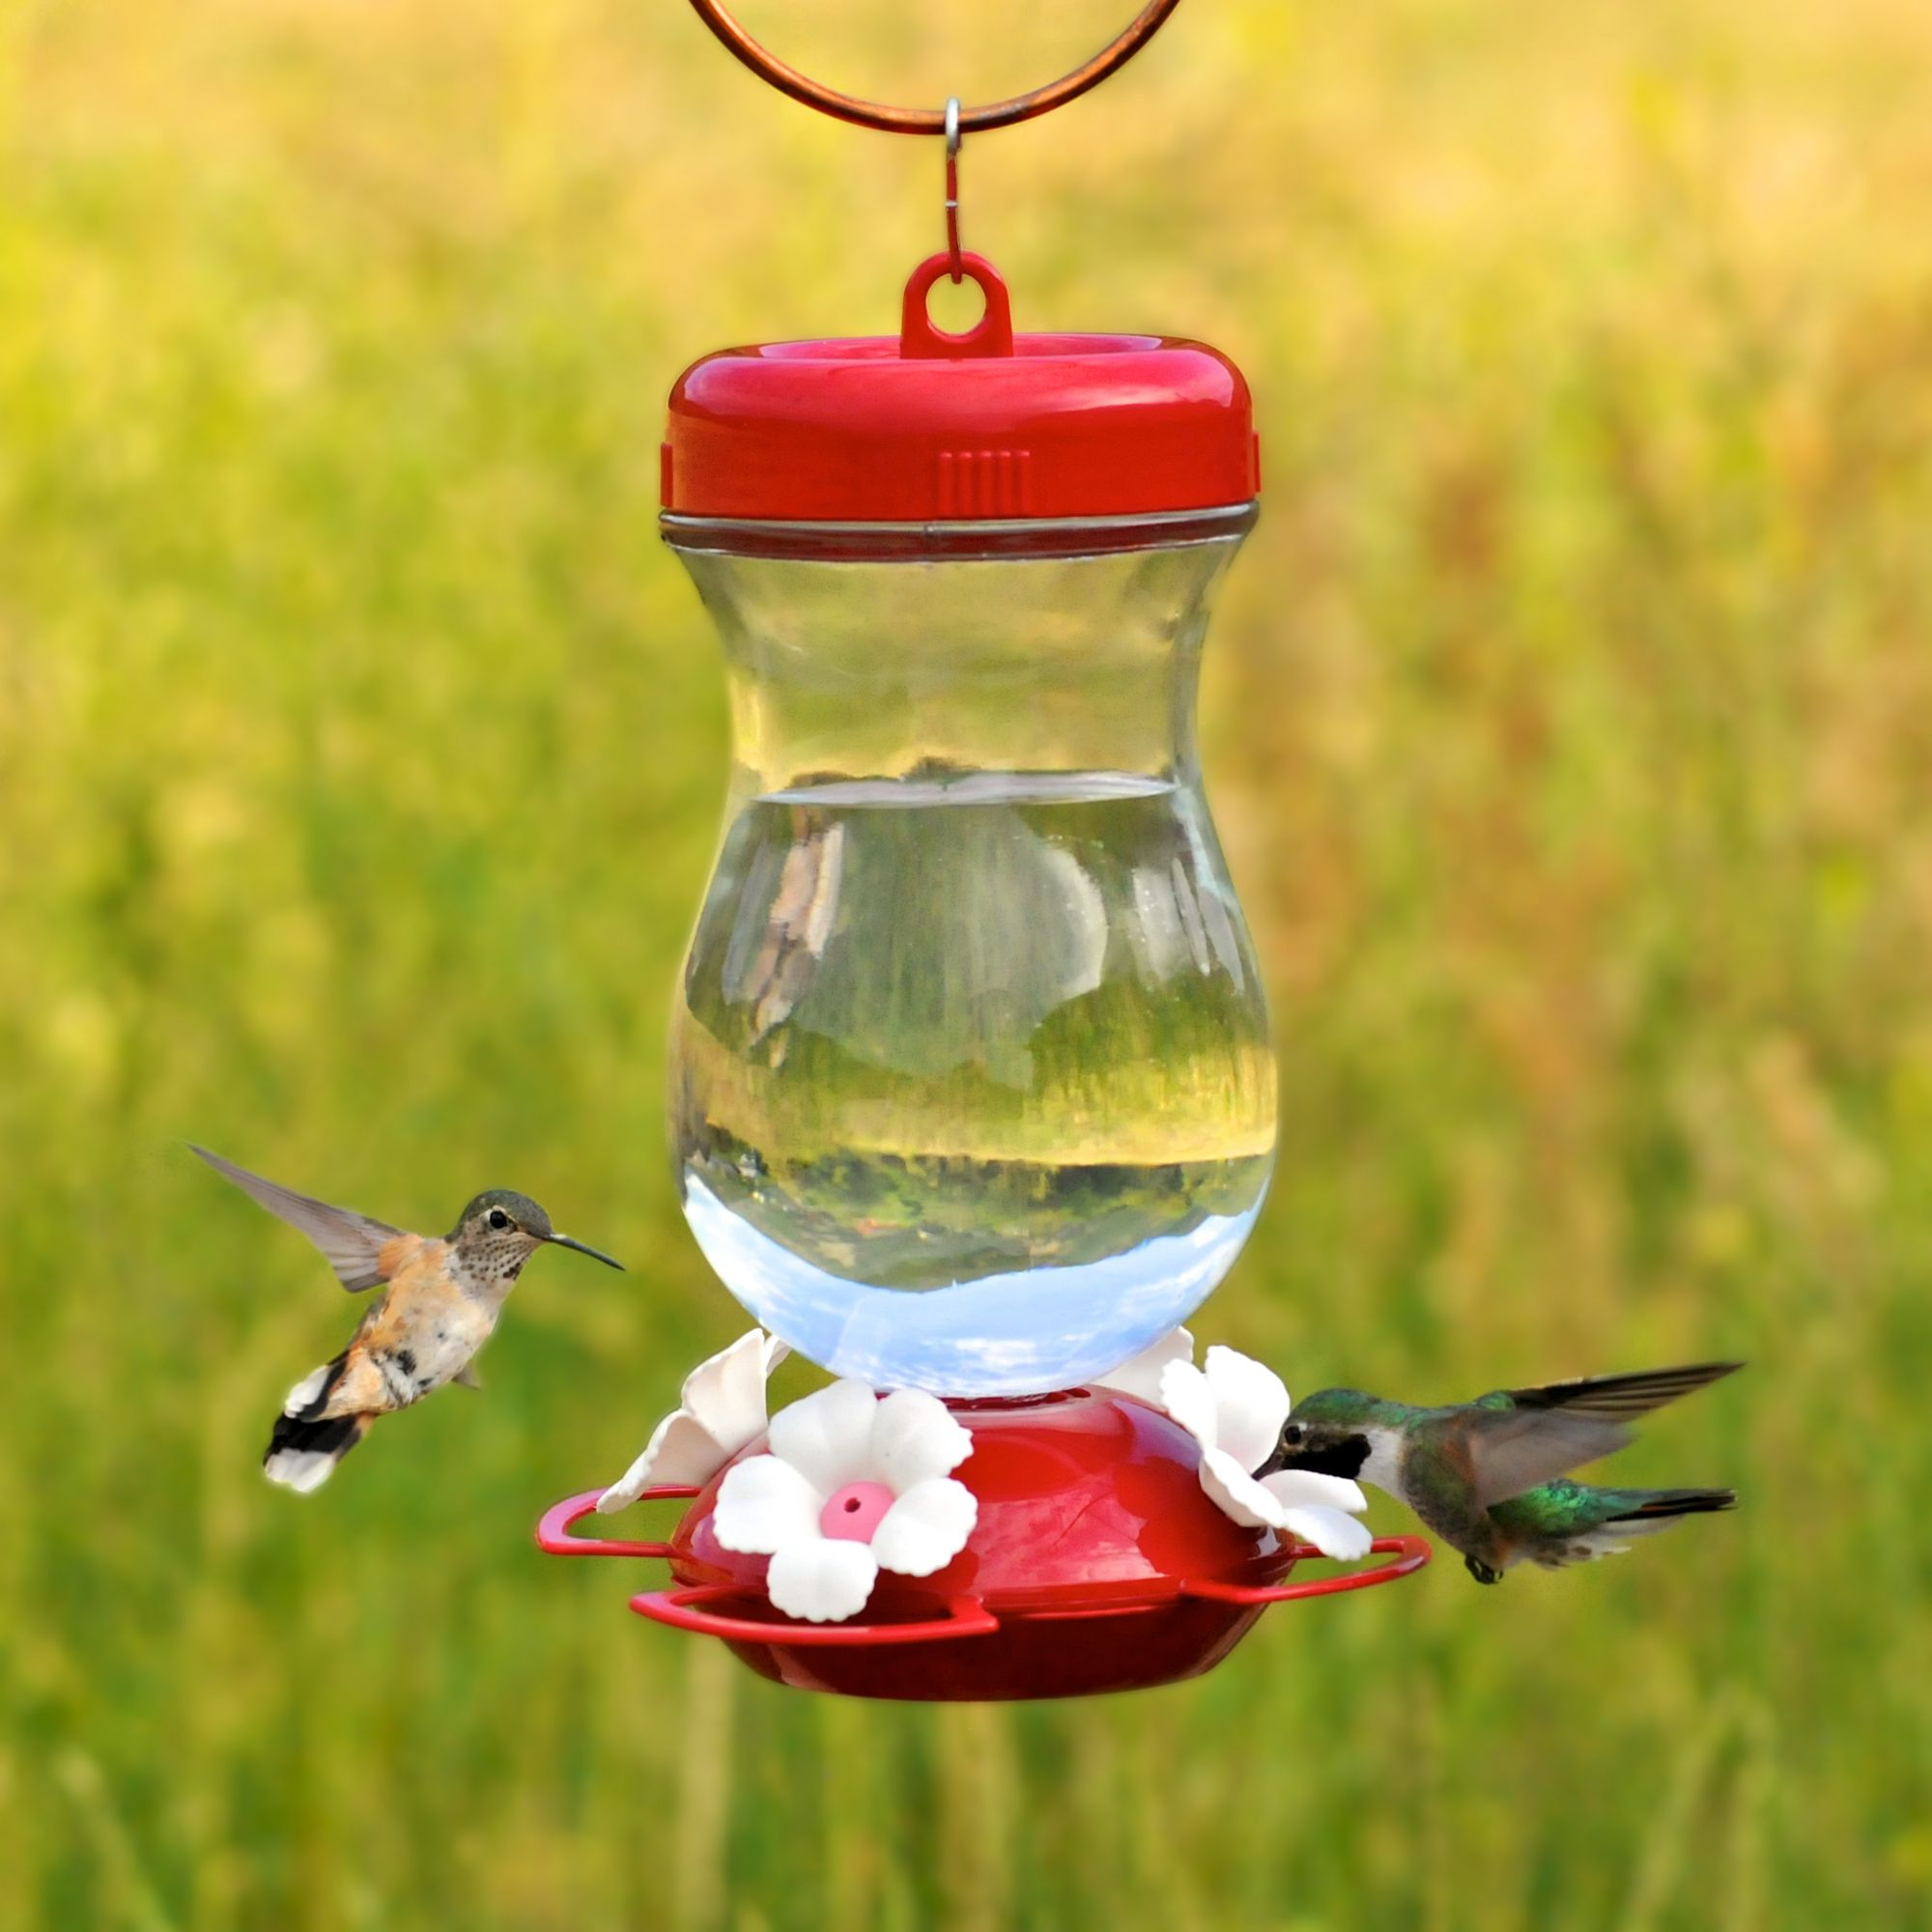 round feeder hummers crazy hummingbird love like attracts feeders hummingbirds products decorative we glass